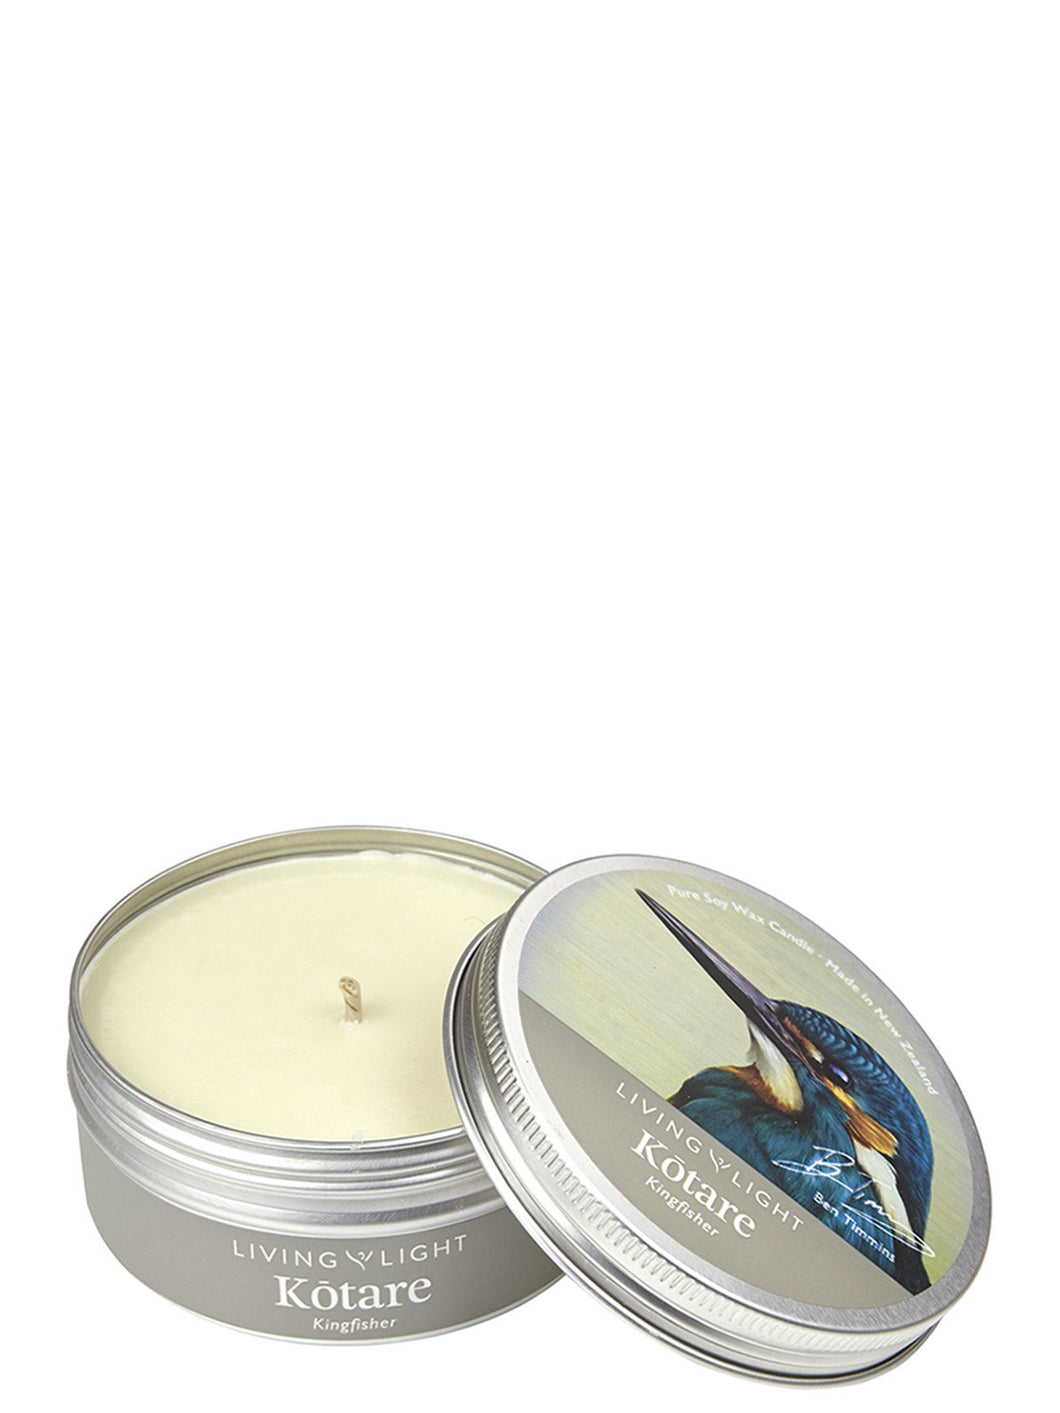 Kotare (Kingfisher) inspired Soy Candle in Tin